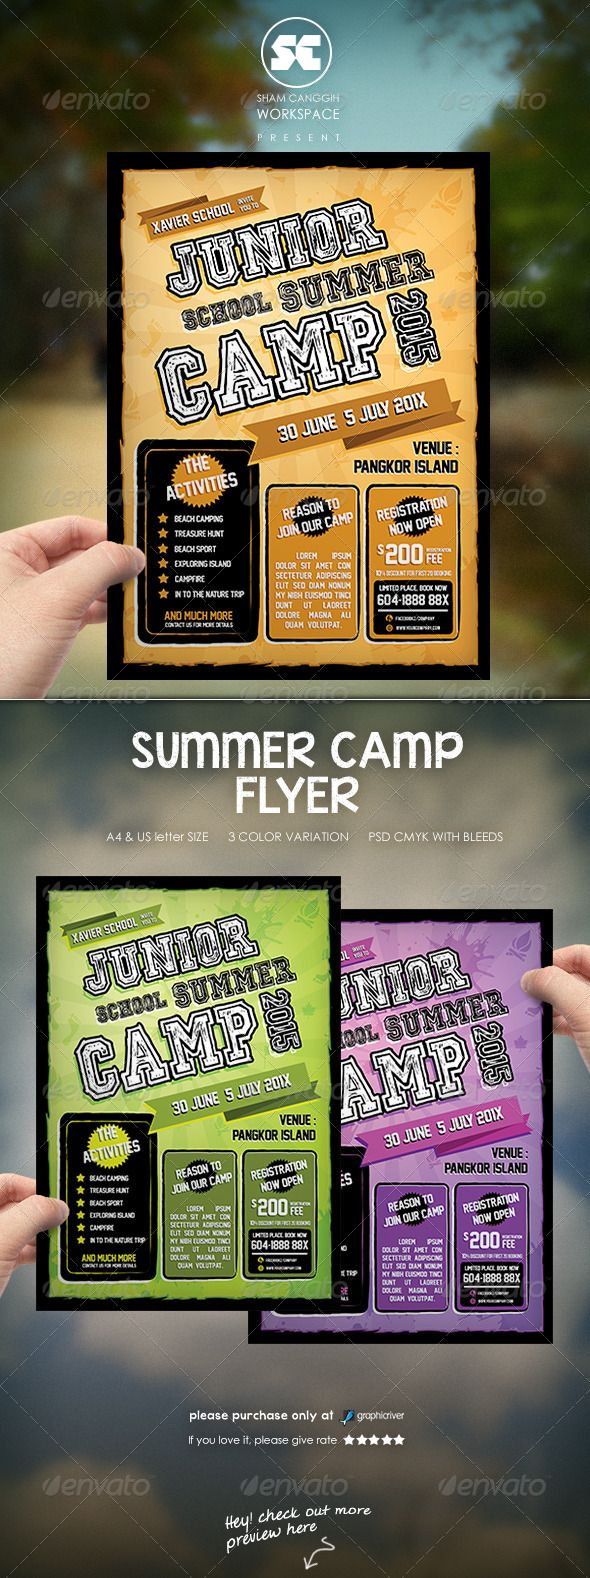 Best Events Images On   Flyer Template Booklet